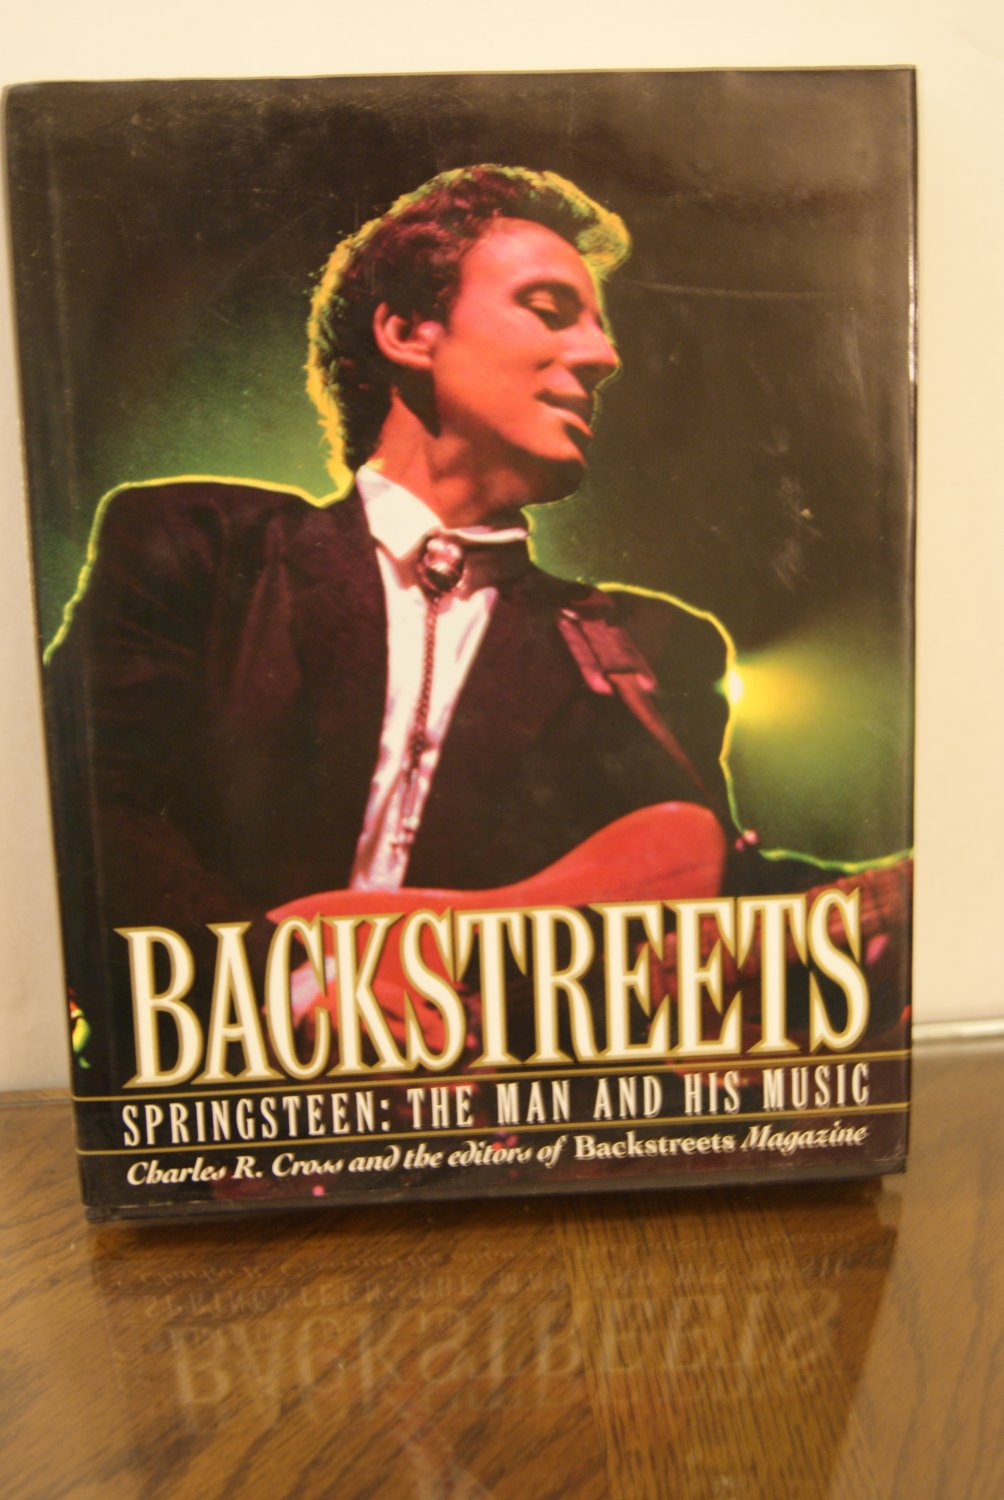 Backstreets / Stringsteen : The man and his music